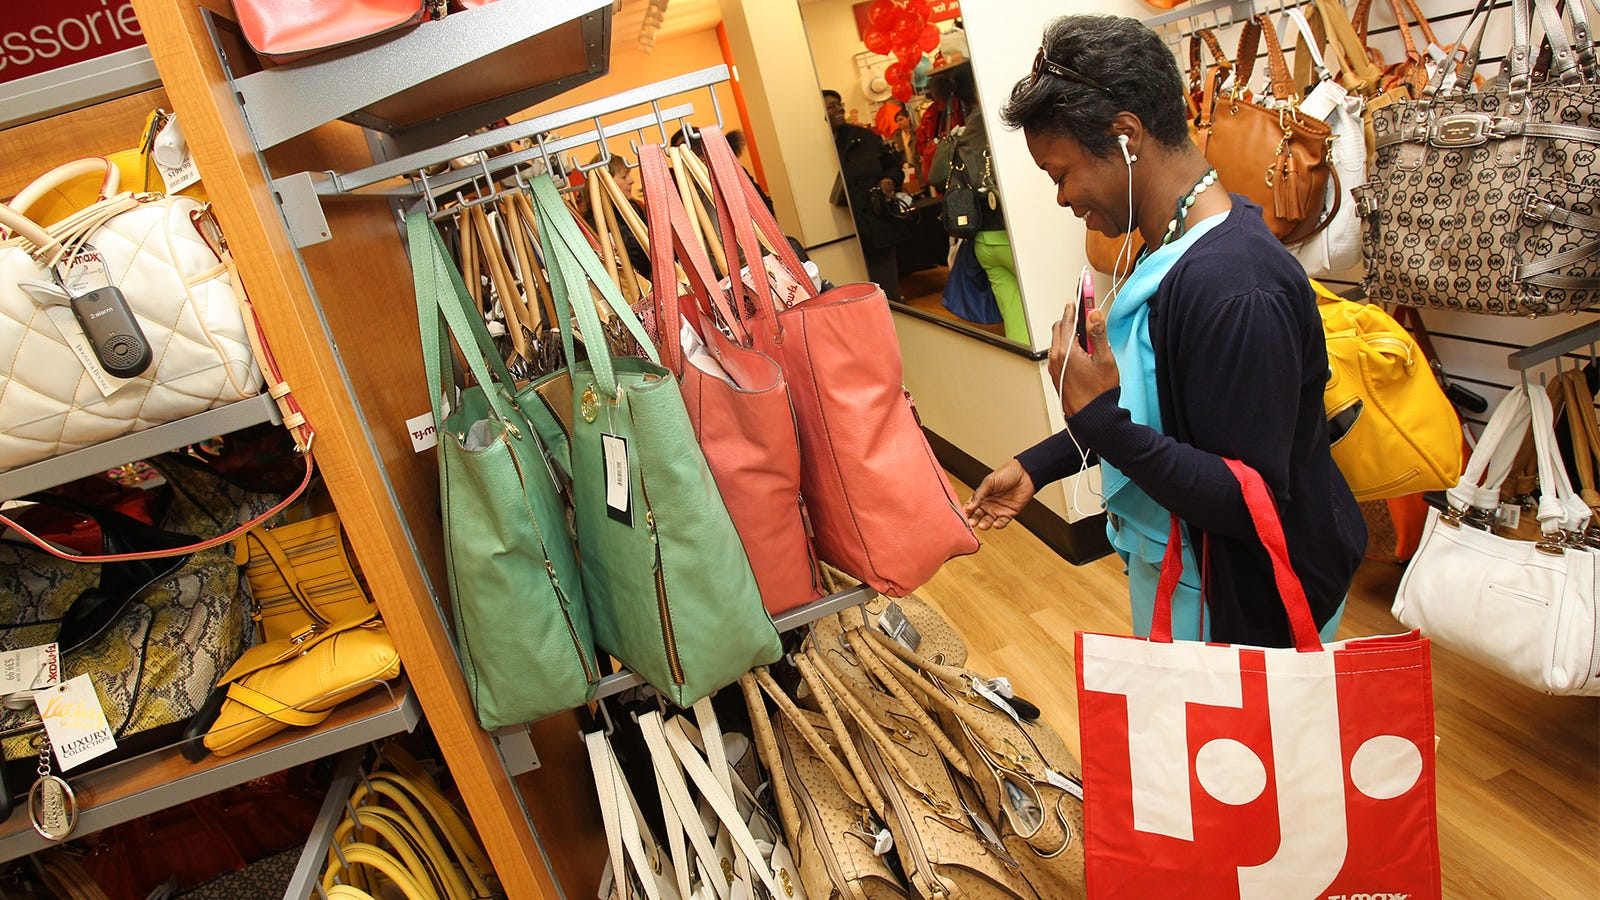 7 ways to maximize your shopping trips to T.J. Maxx